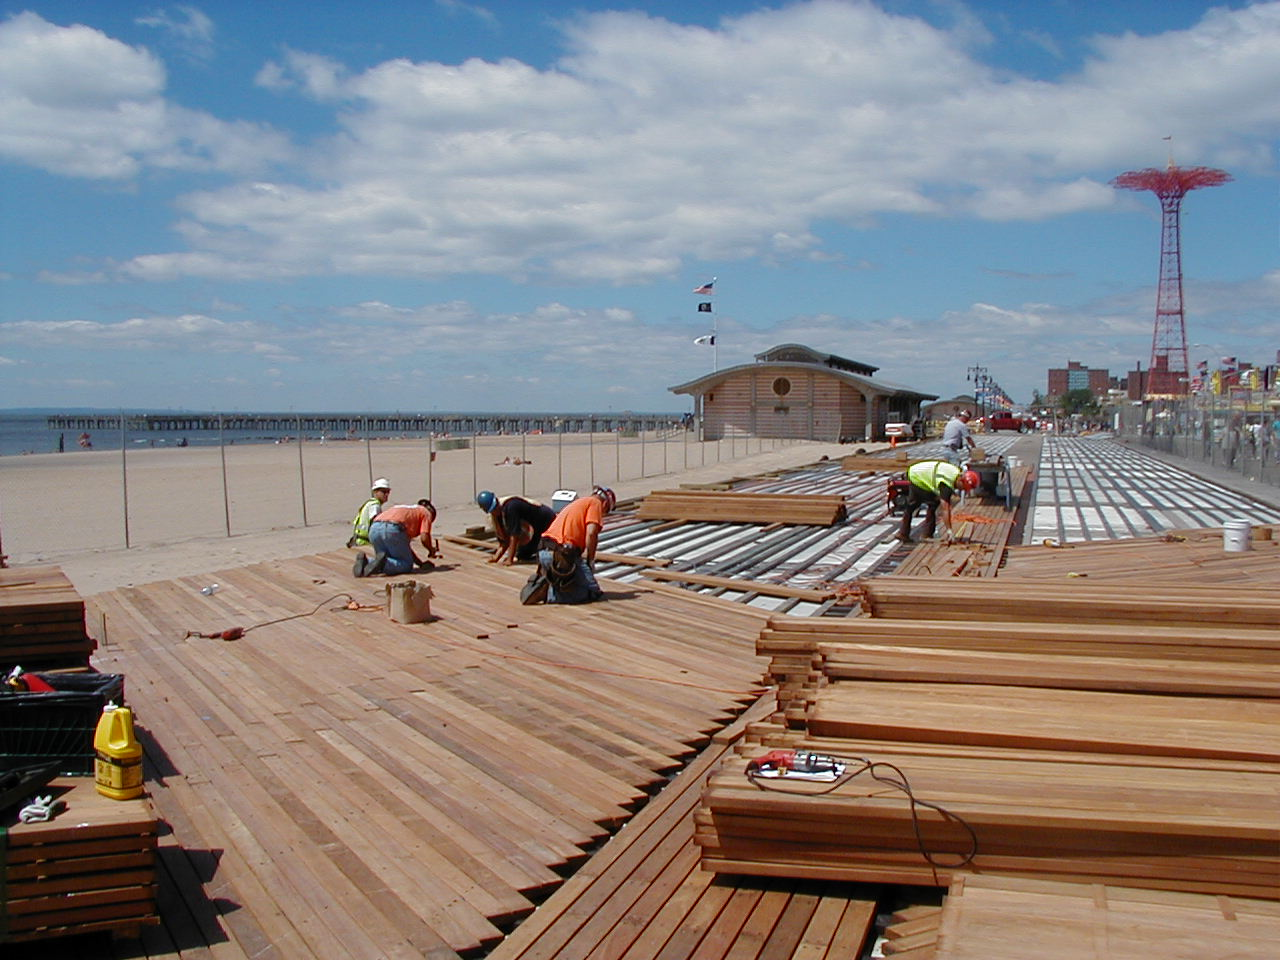 Cumaru dimensional lumber being used as decking on the Coney Island Boardwalk